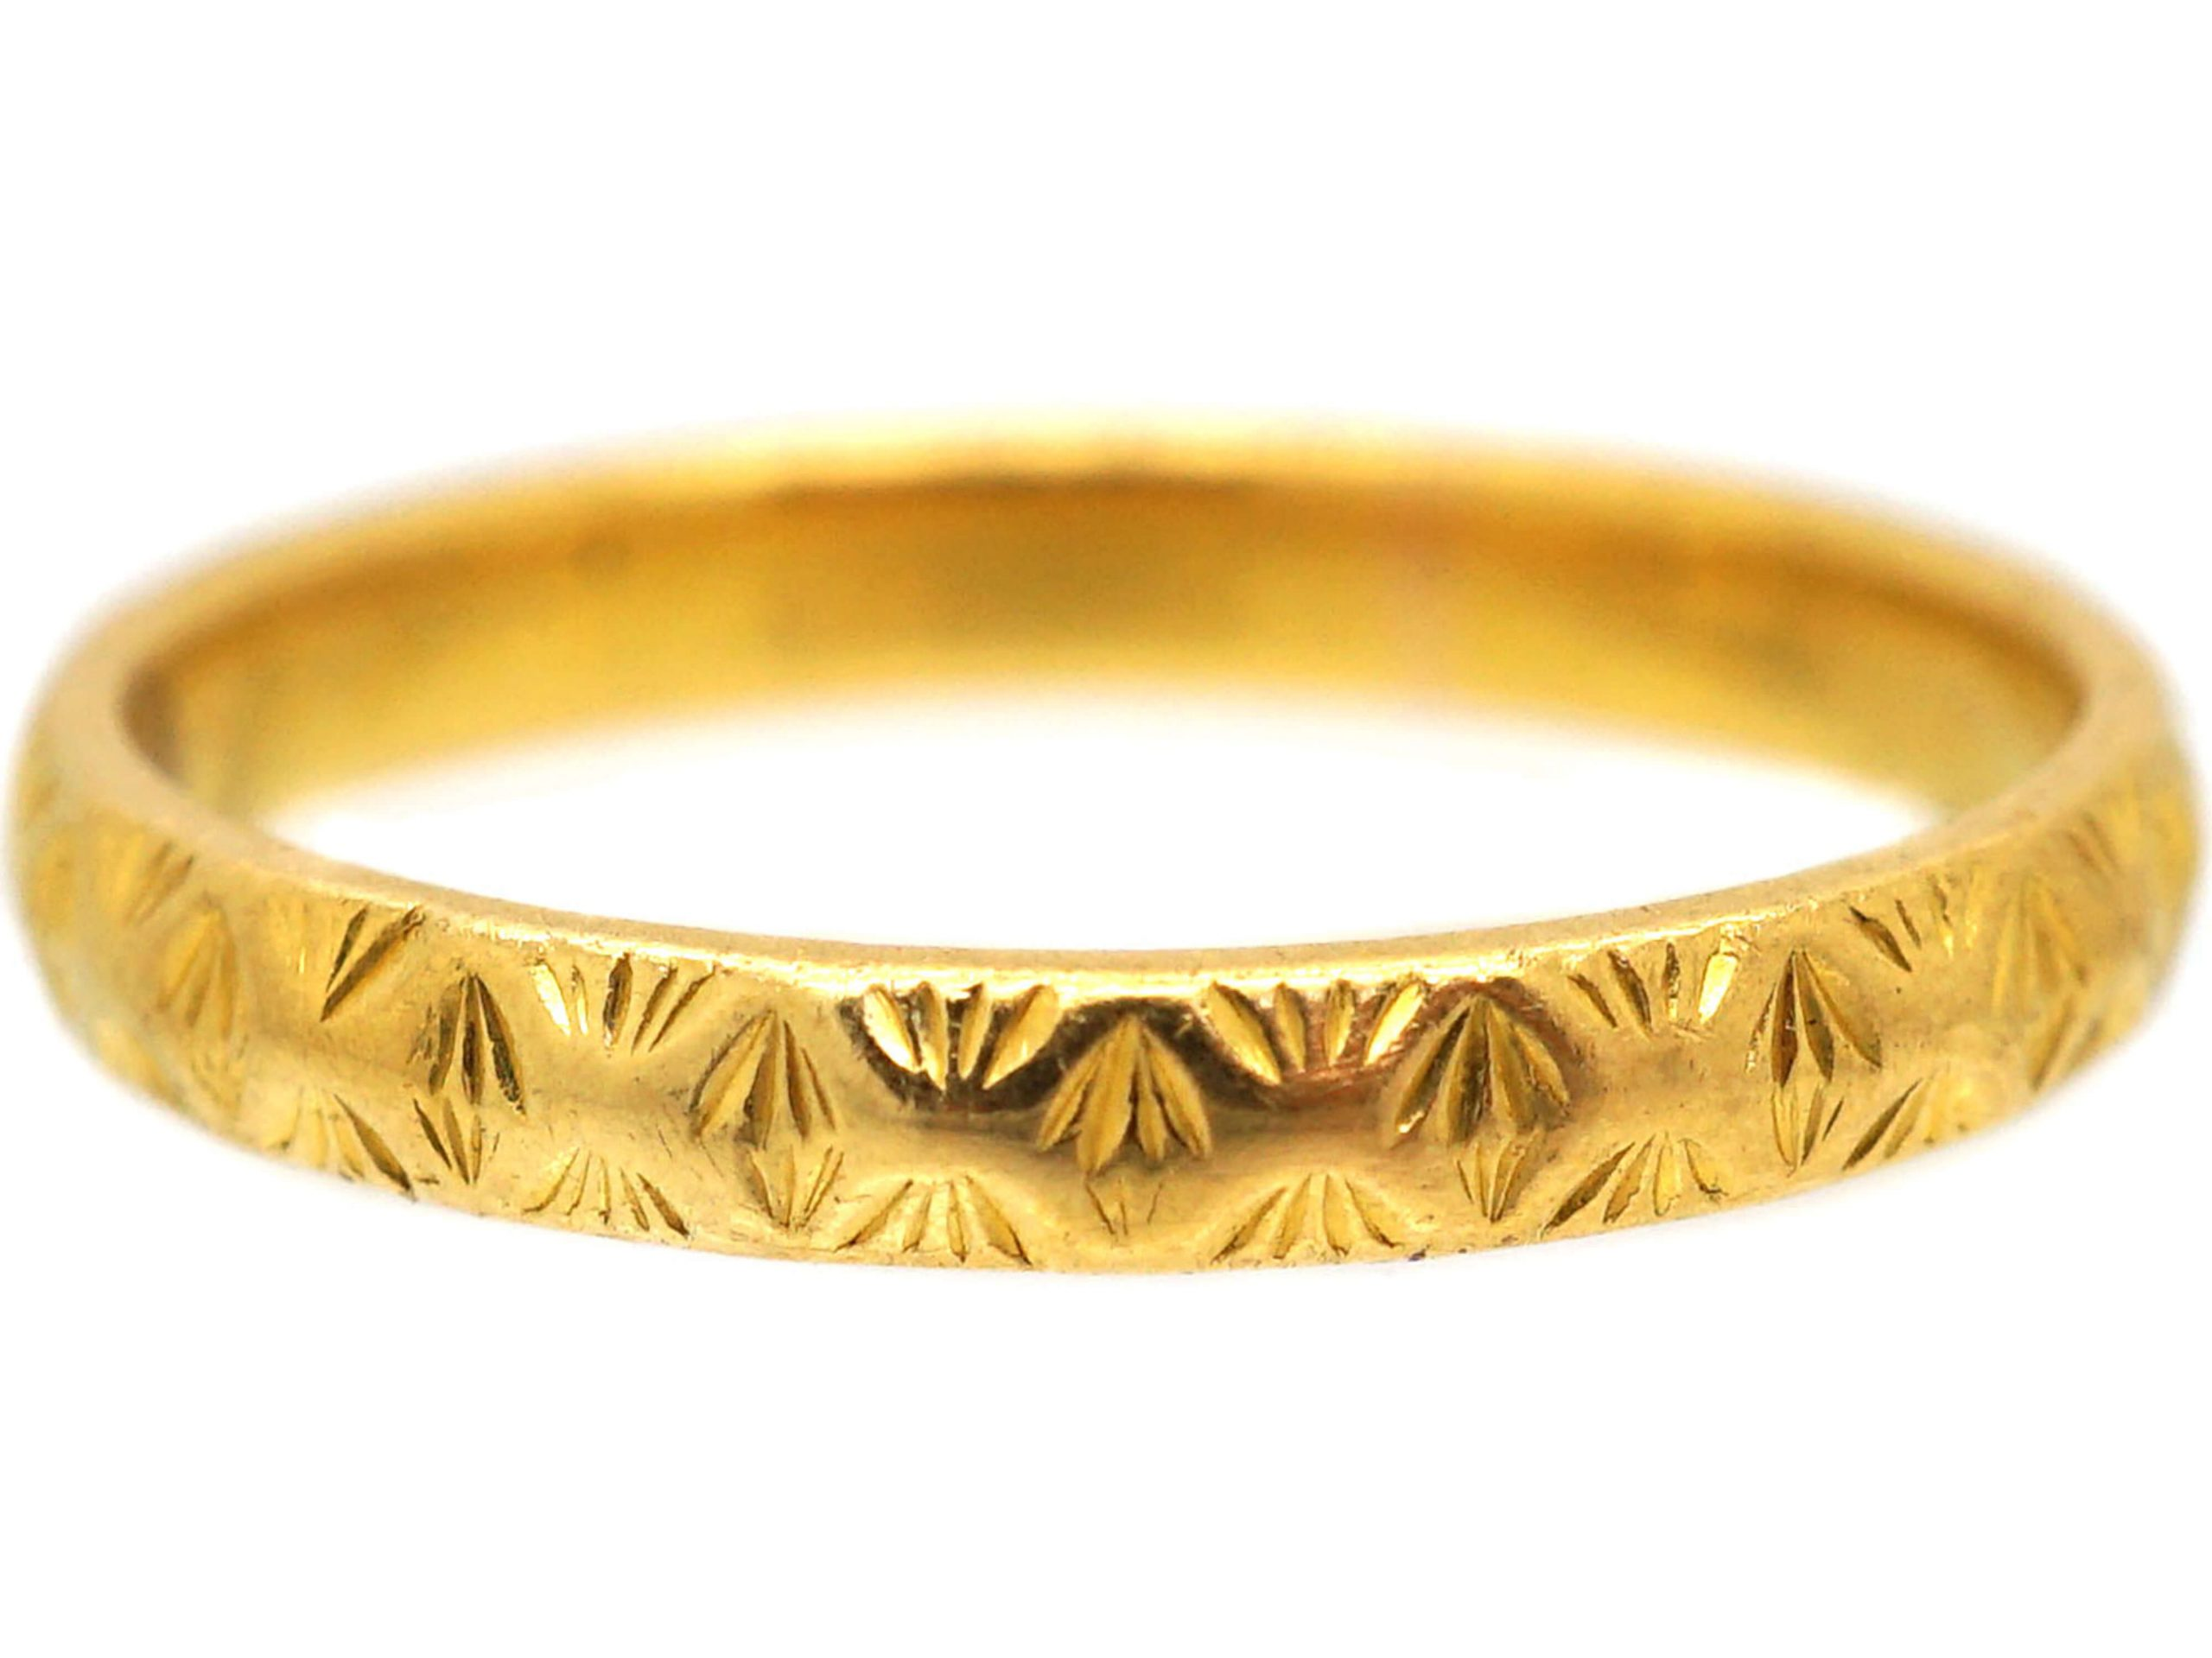 Art Deco 22ct Gold Wedding Ring with Ornate Decoration